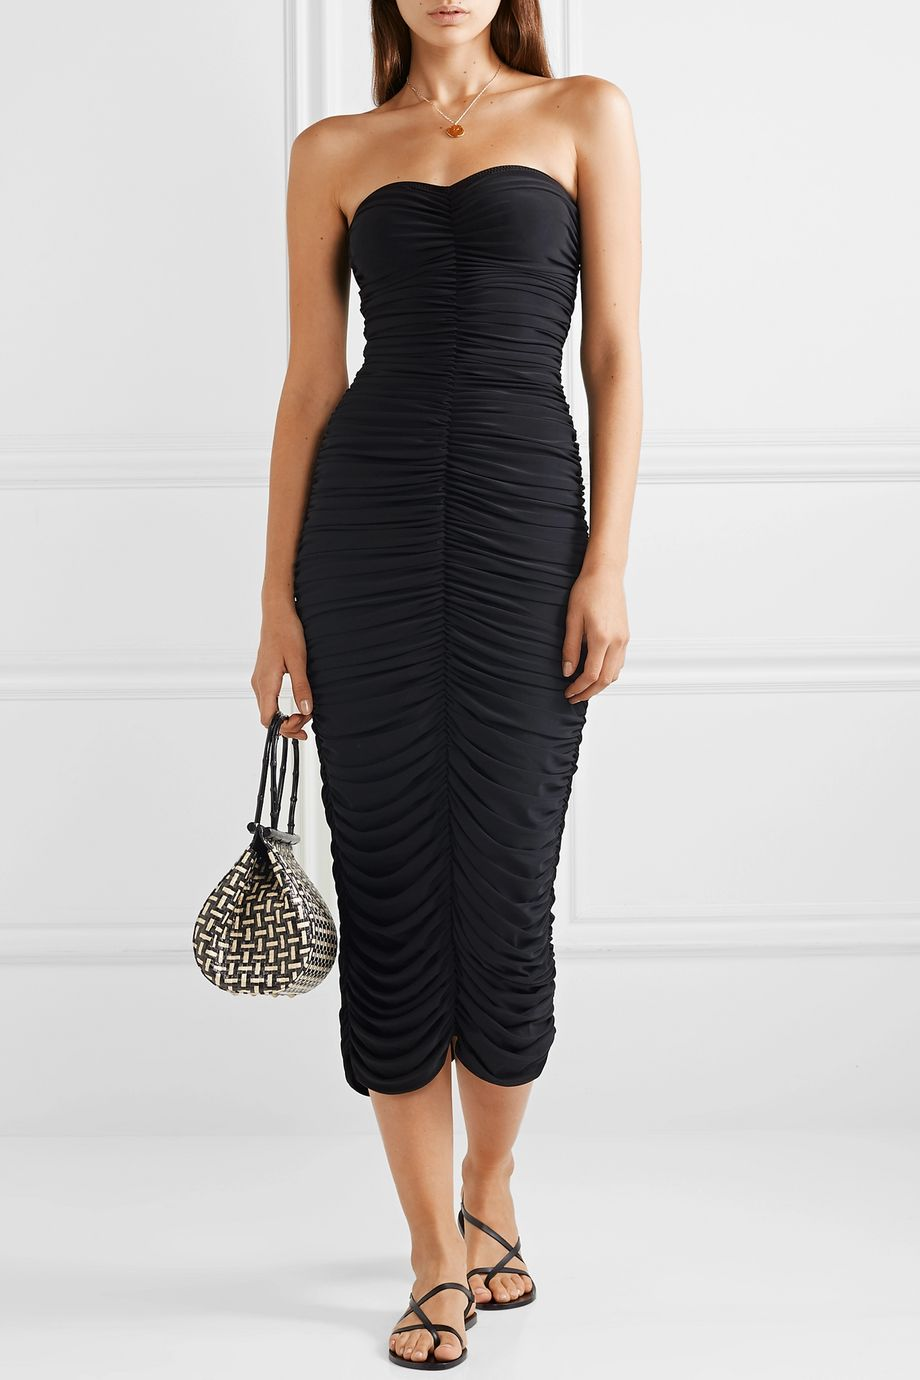 Norma Kamali Slinky strapless ruched stretch-jersey midi dress